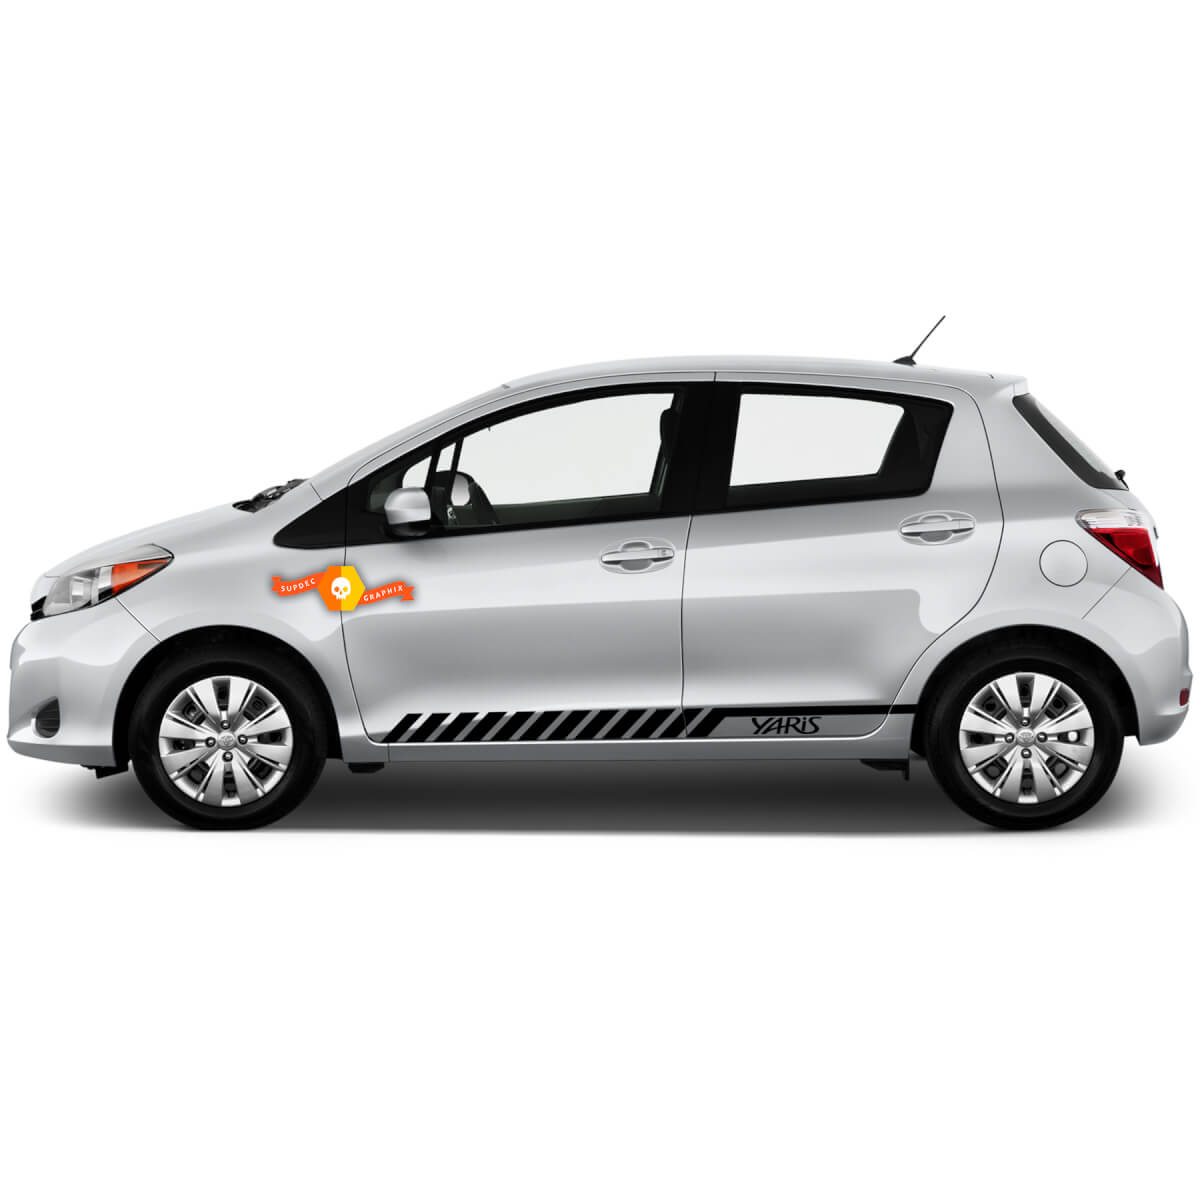 Toyota Yaris 013 side racing stripes graphics stickers decals vinyl